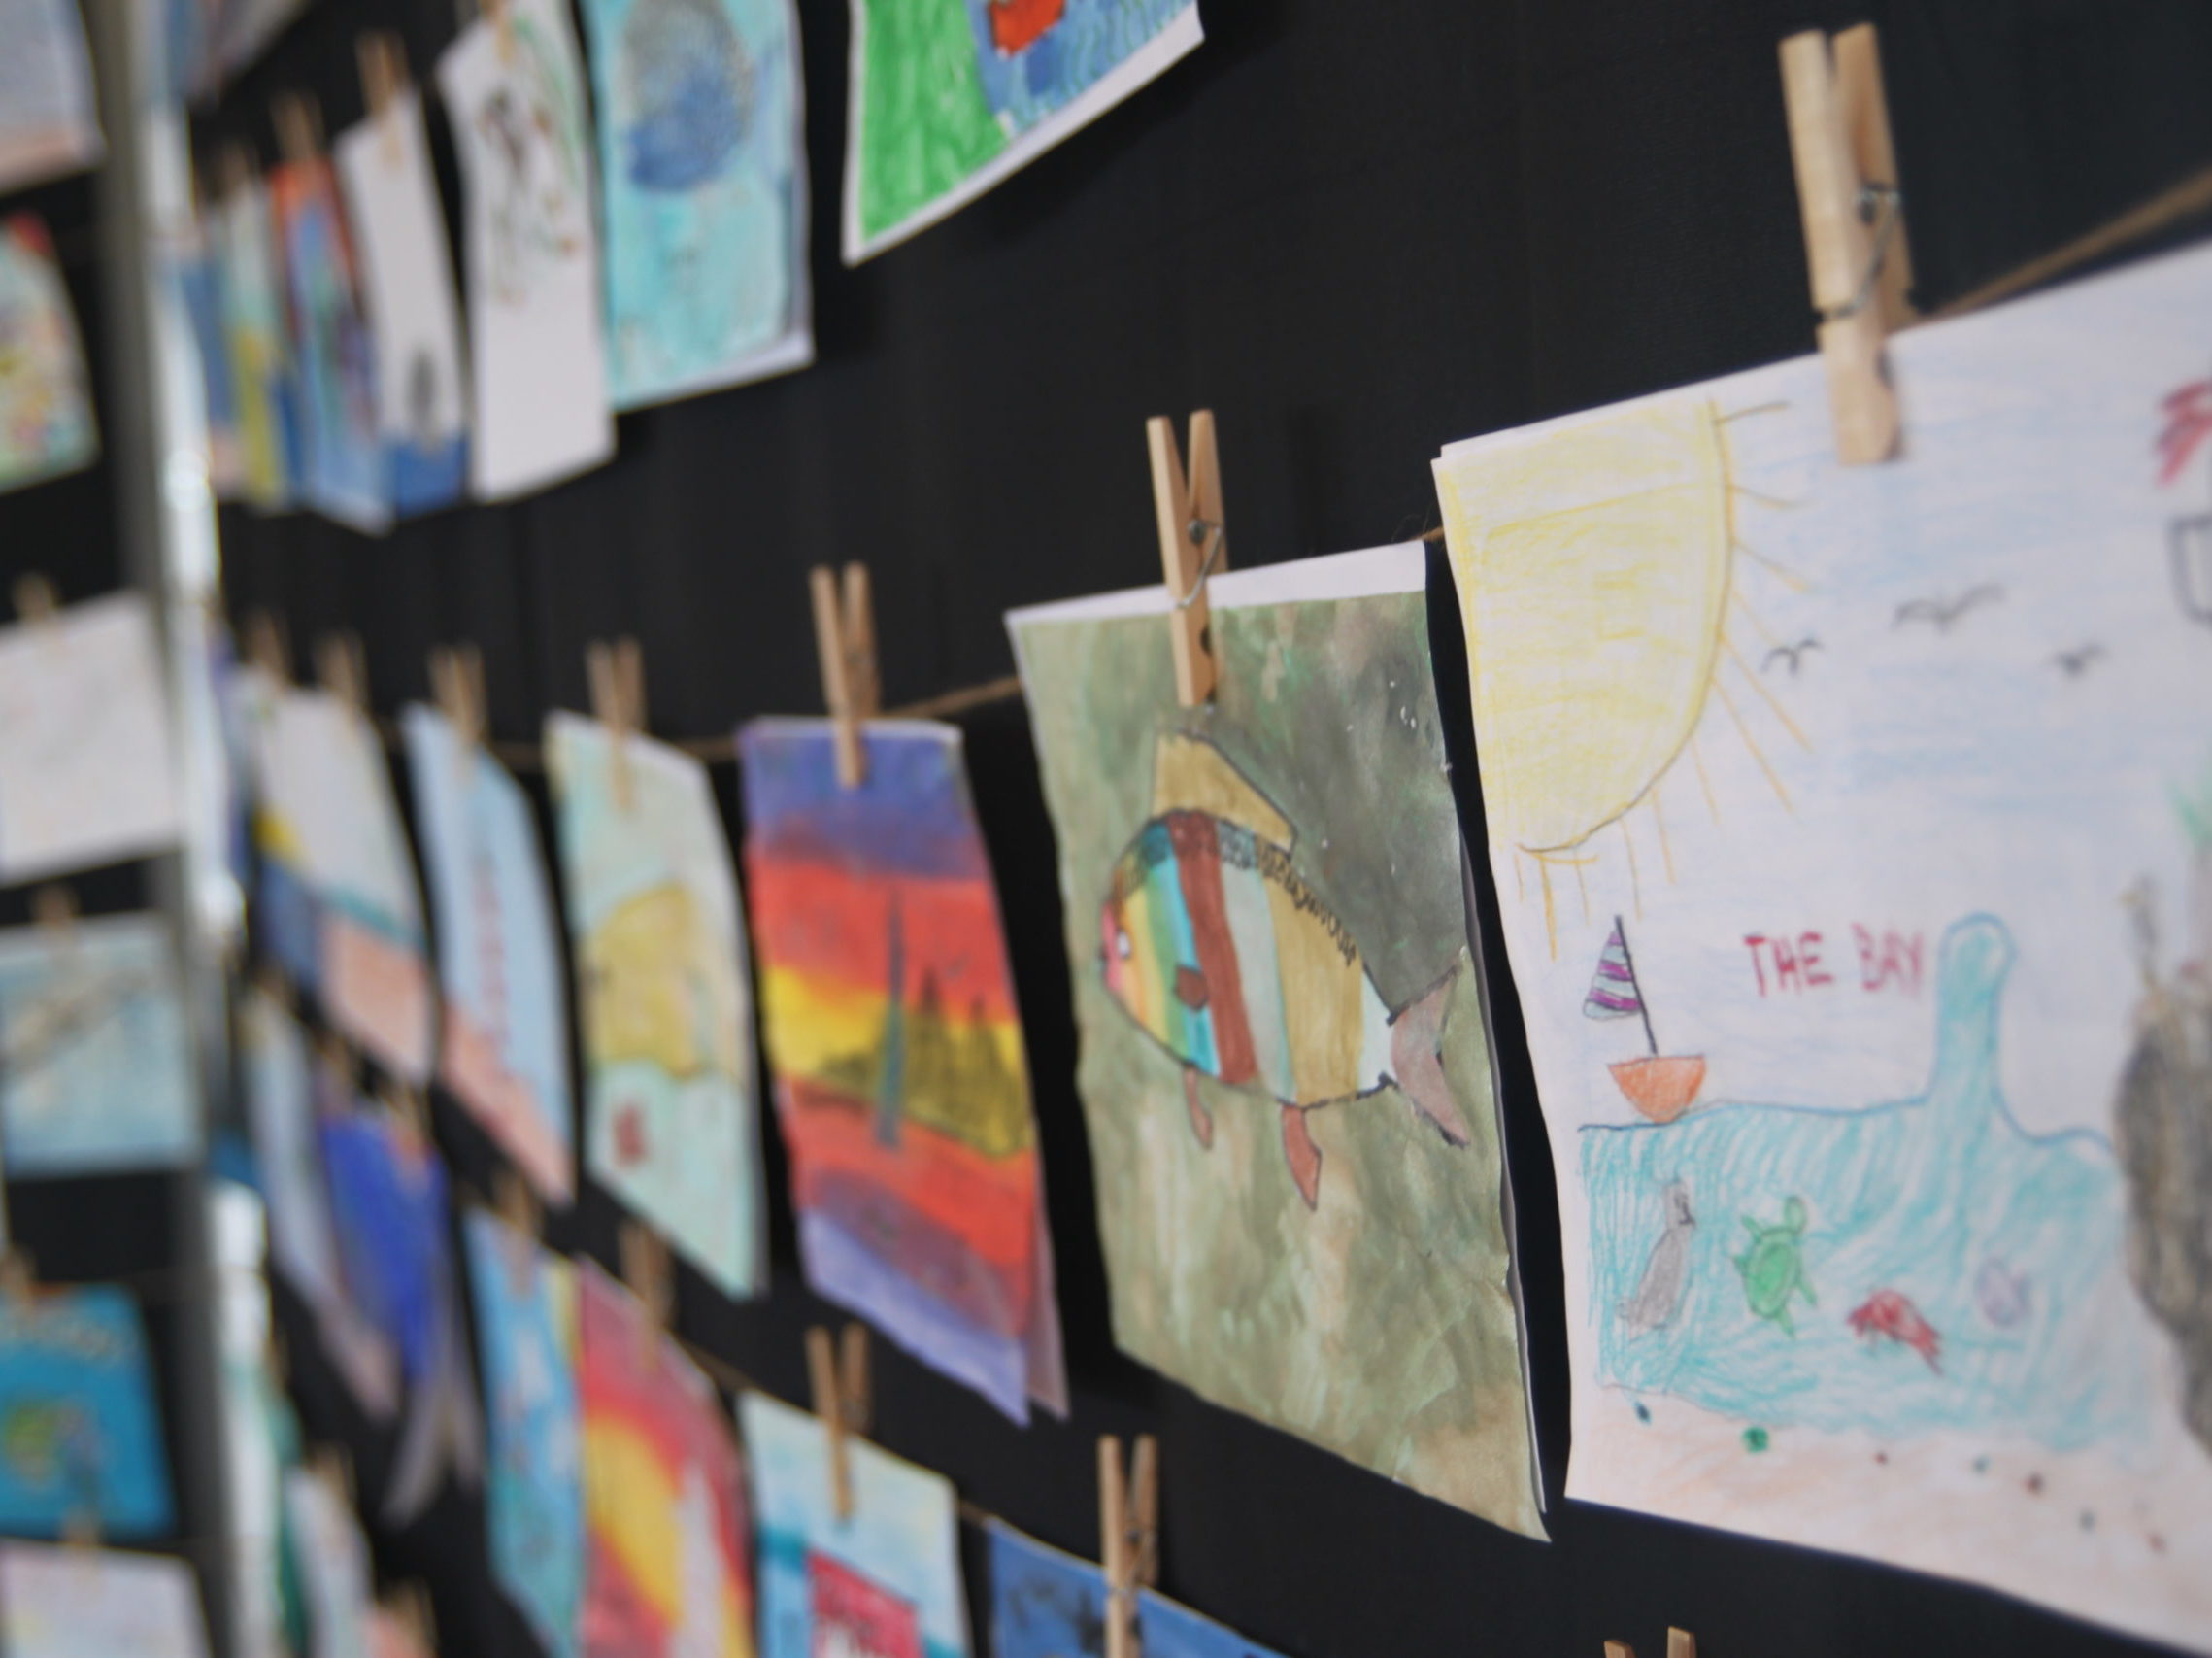 Entries of the 2019 Old School Art Contest on display at Save The Bays 2019 Earth Day Birthday Party